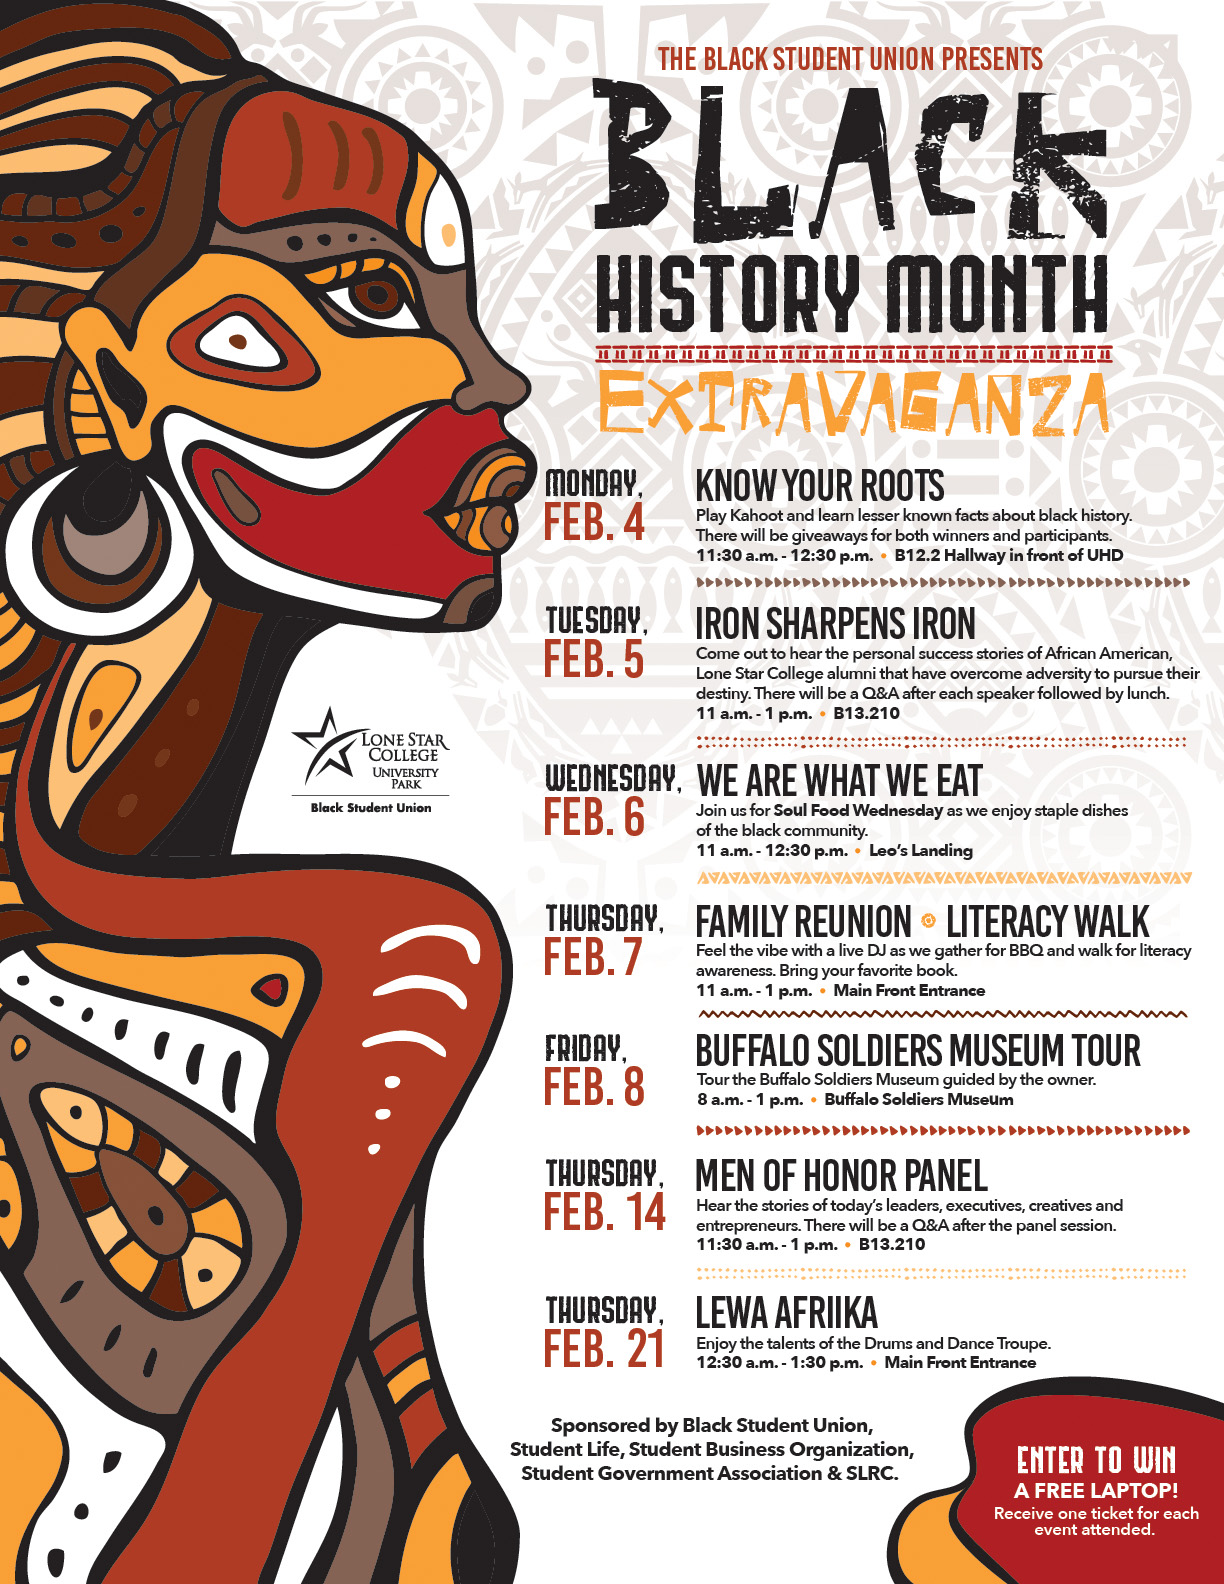 Flyer listing the events for Black History Month 2019